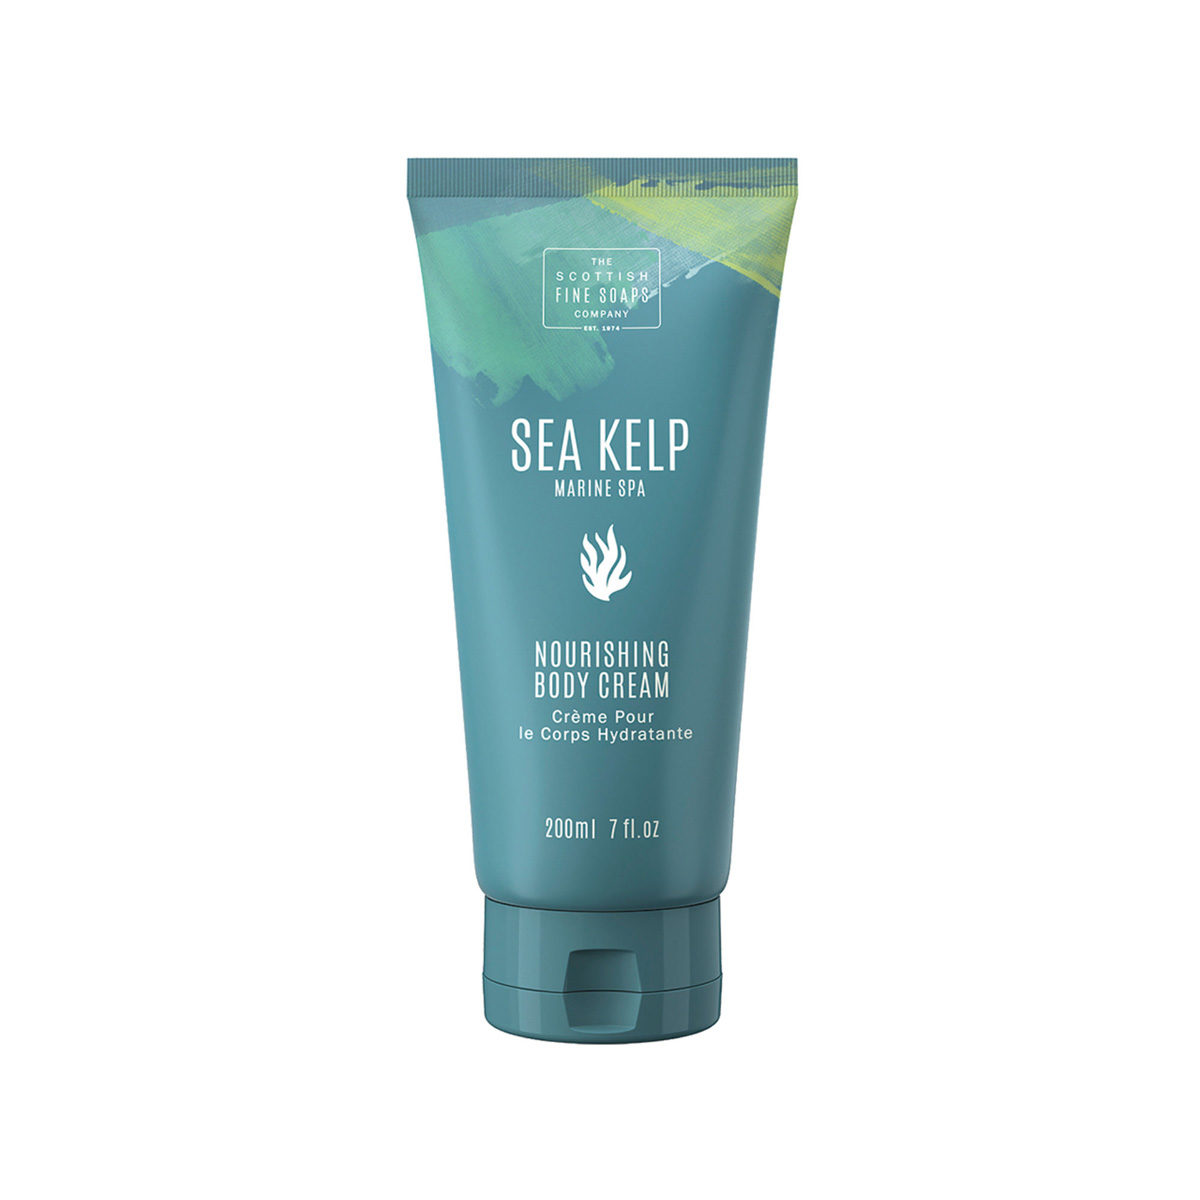 Sea Kelp Marine Spa Nourishing Body Cream